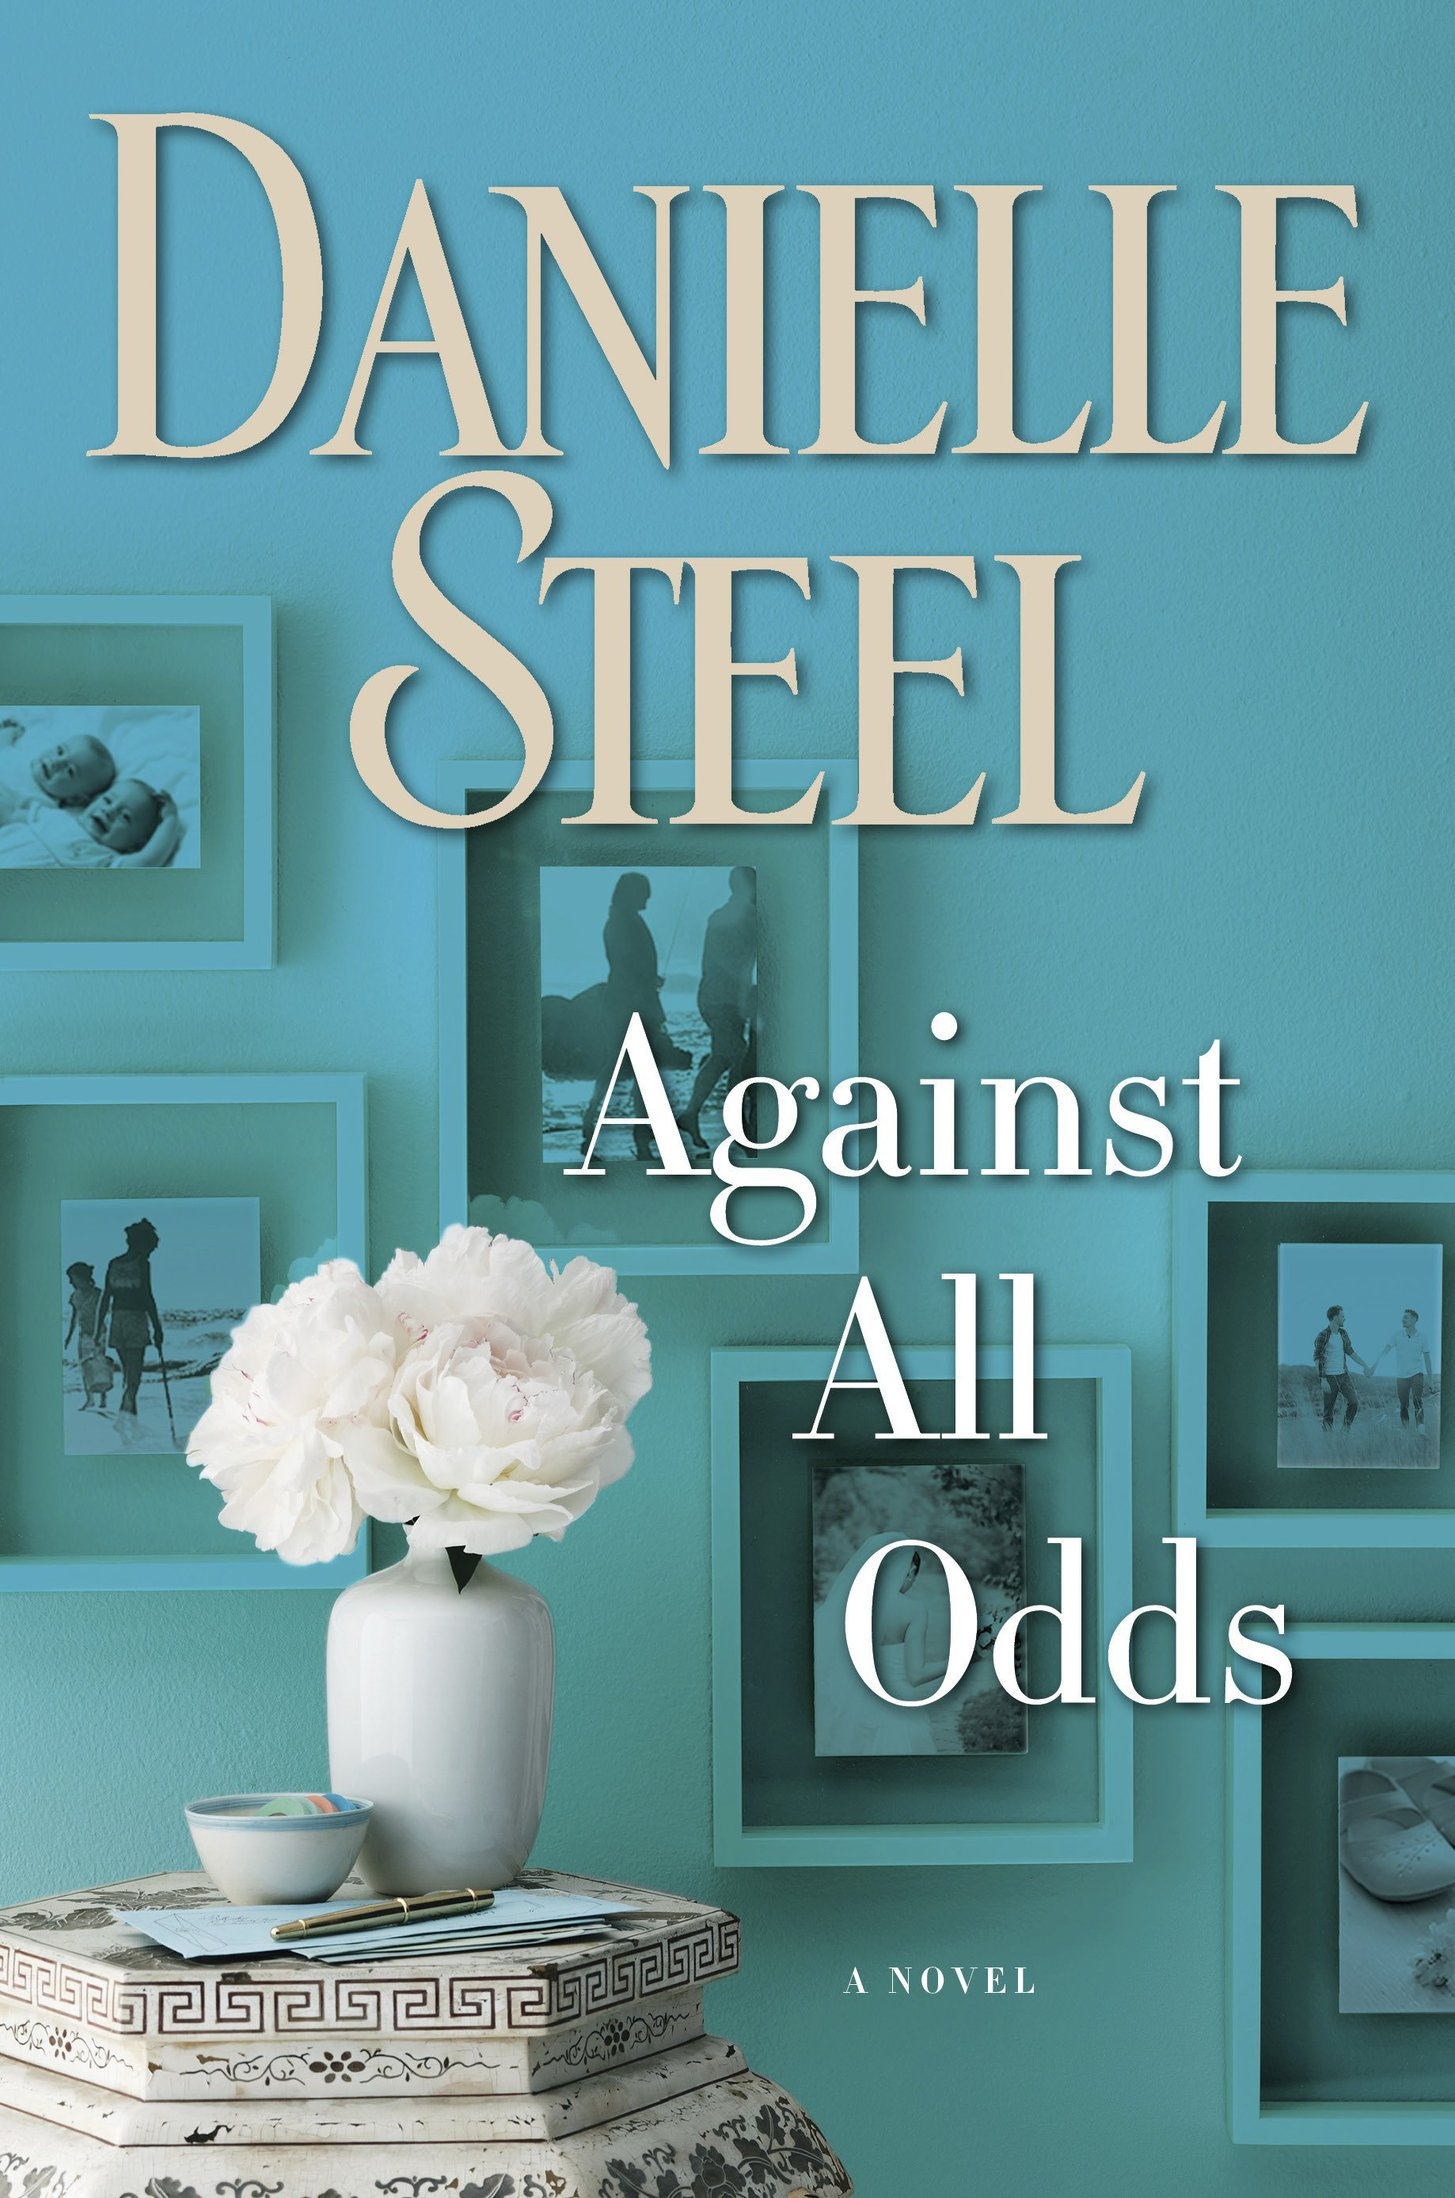 Against All Odds: A Novel - Danielle Steel [kindle] [mobi]